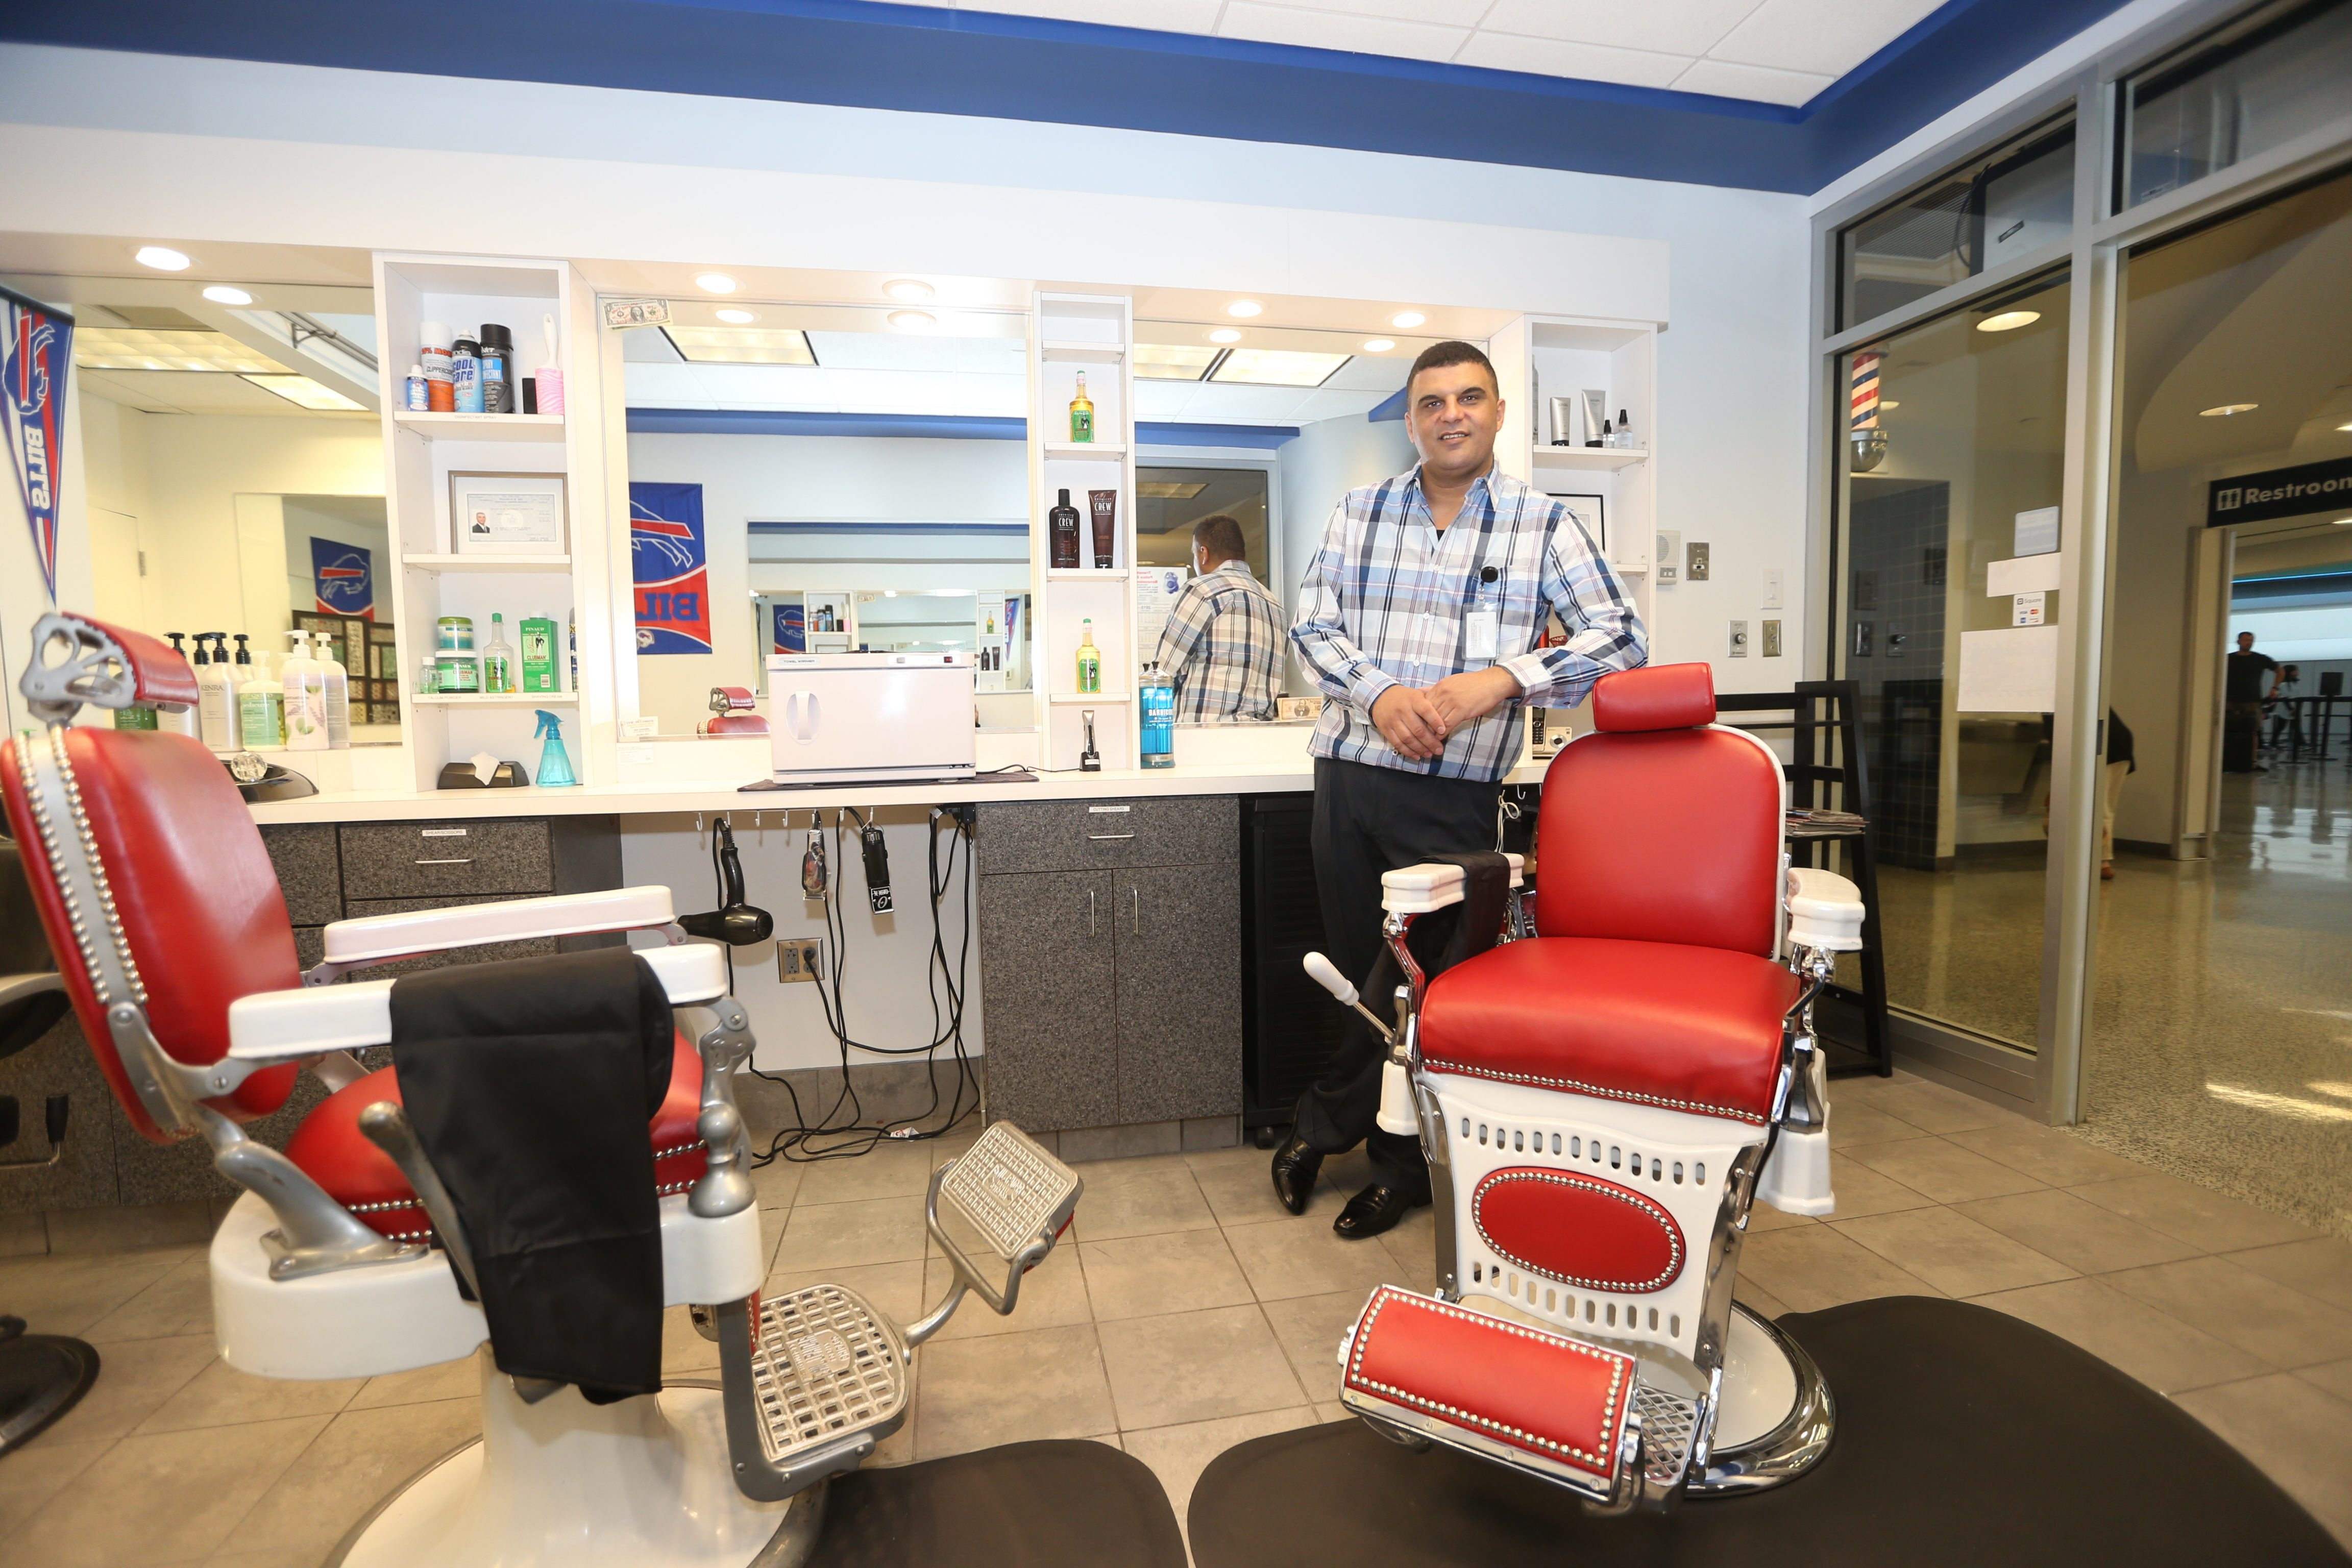 Barber shop owner Hamdi Ismail doesn't cut corners, goes the